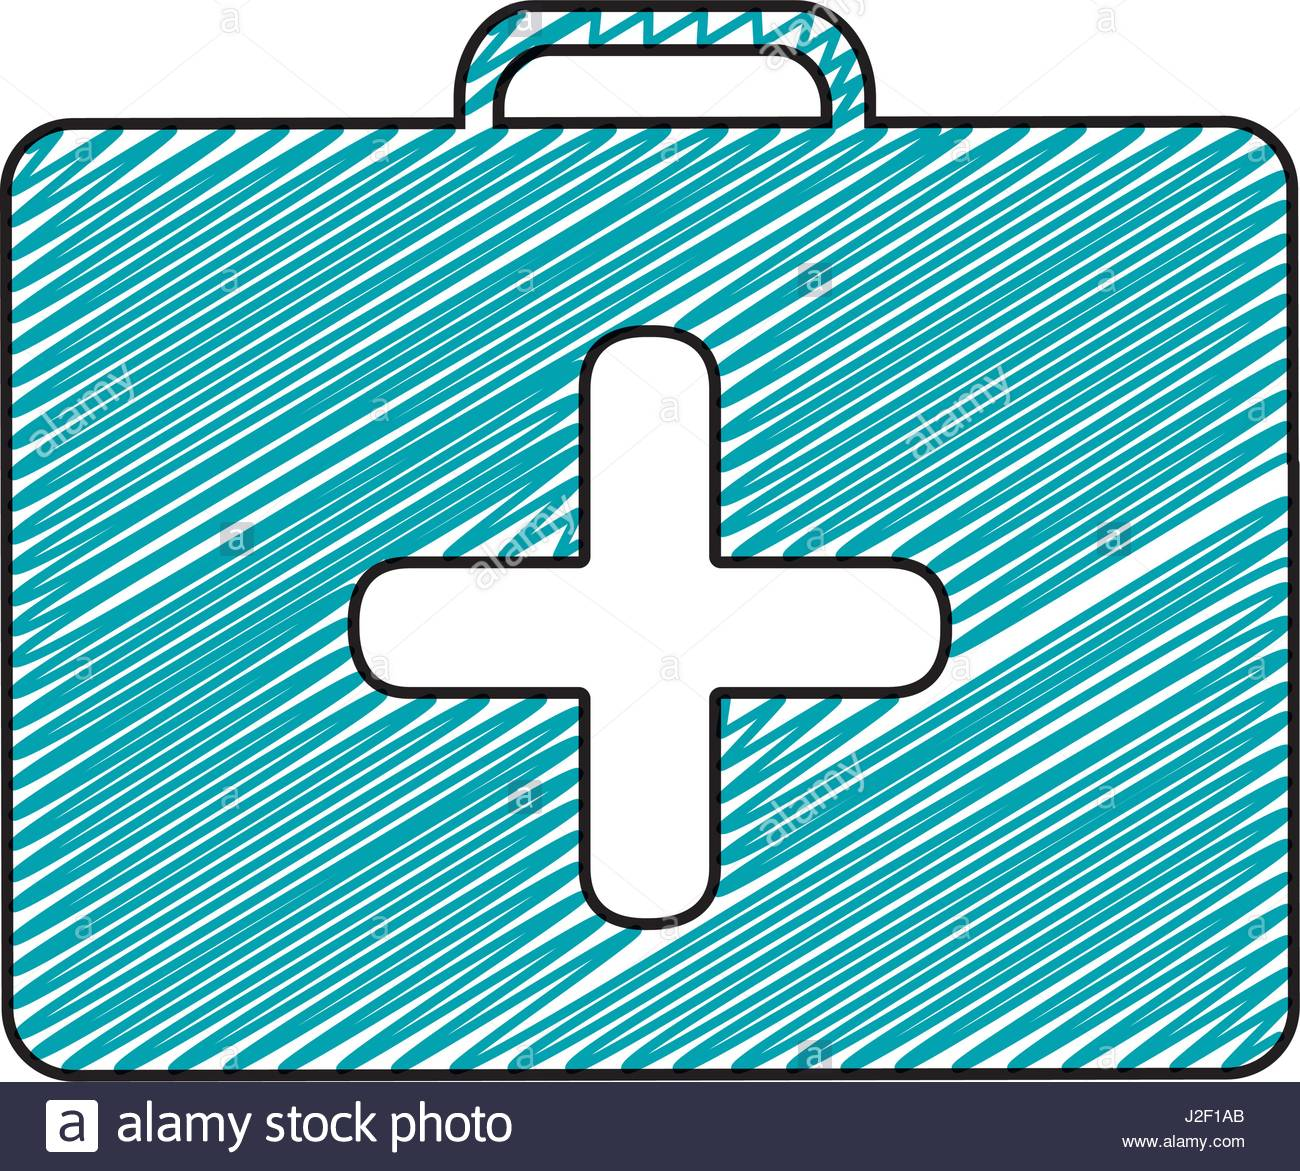 1300x1171 Color Pencil Drawing Of Symbol Of First Aid Kit With Cross Stock